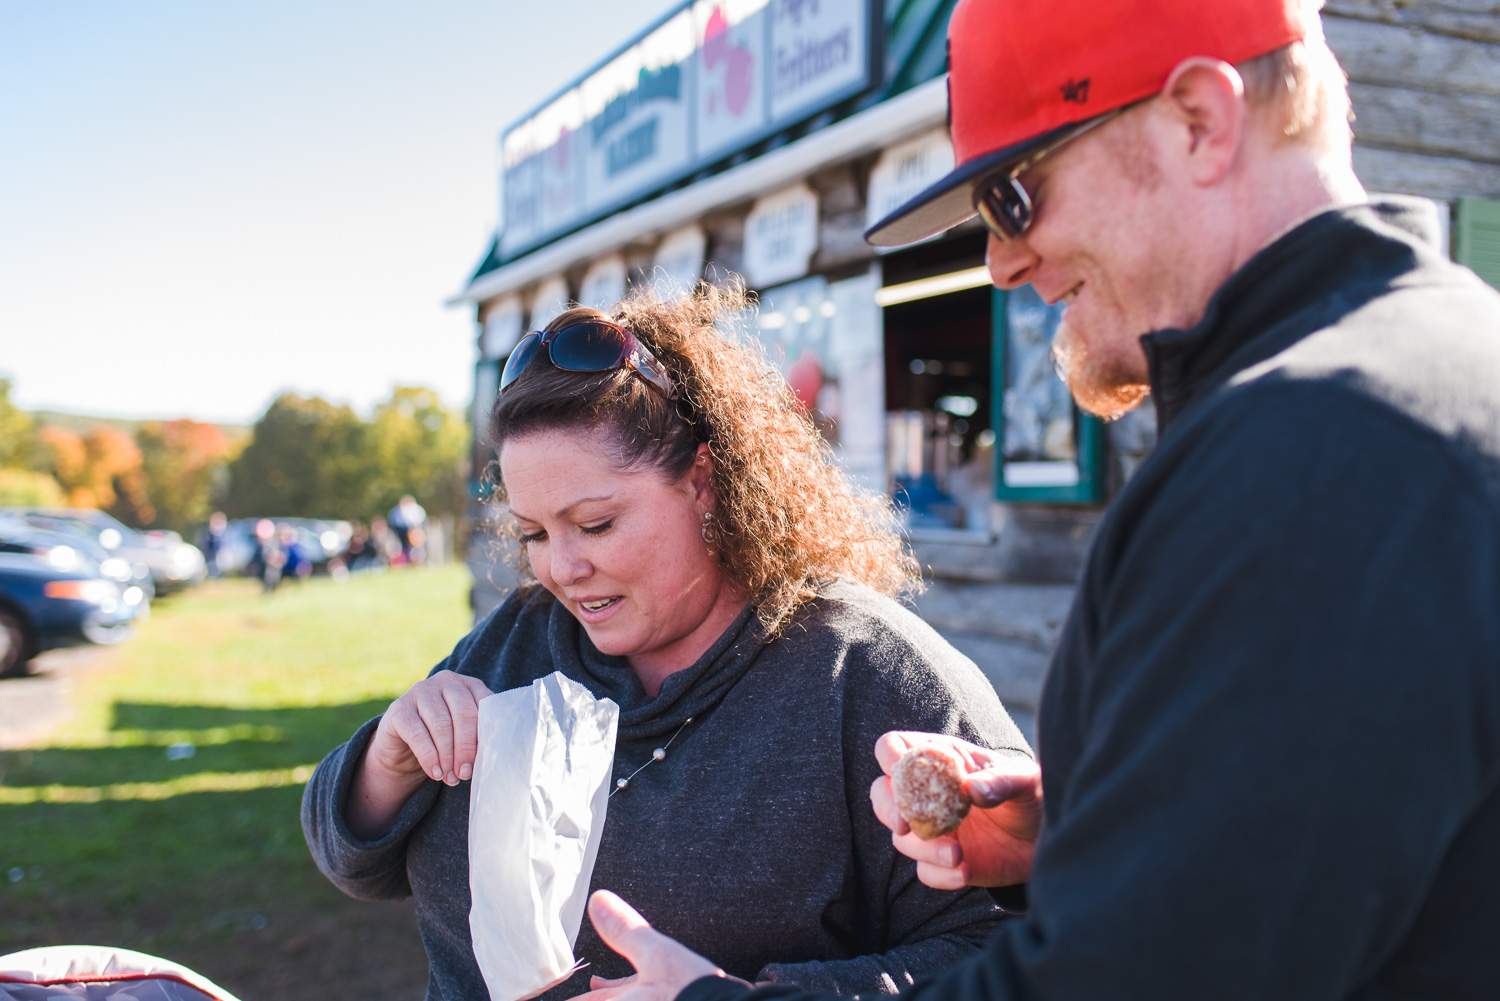 Couple eating apple fritters at an apple farm.